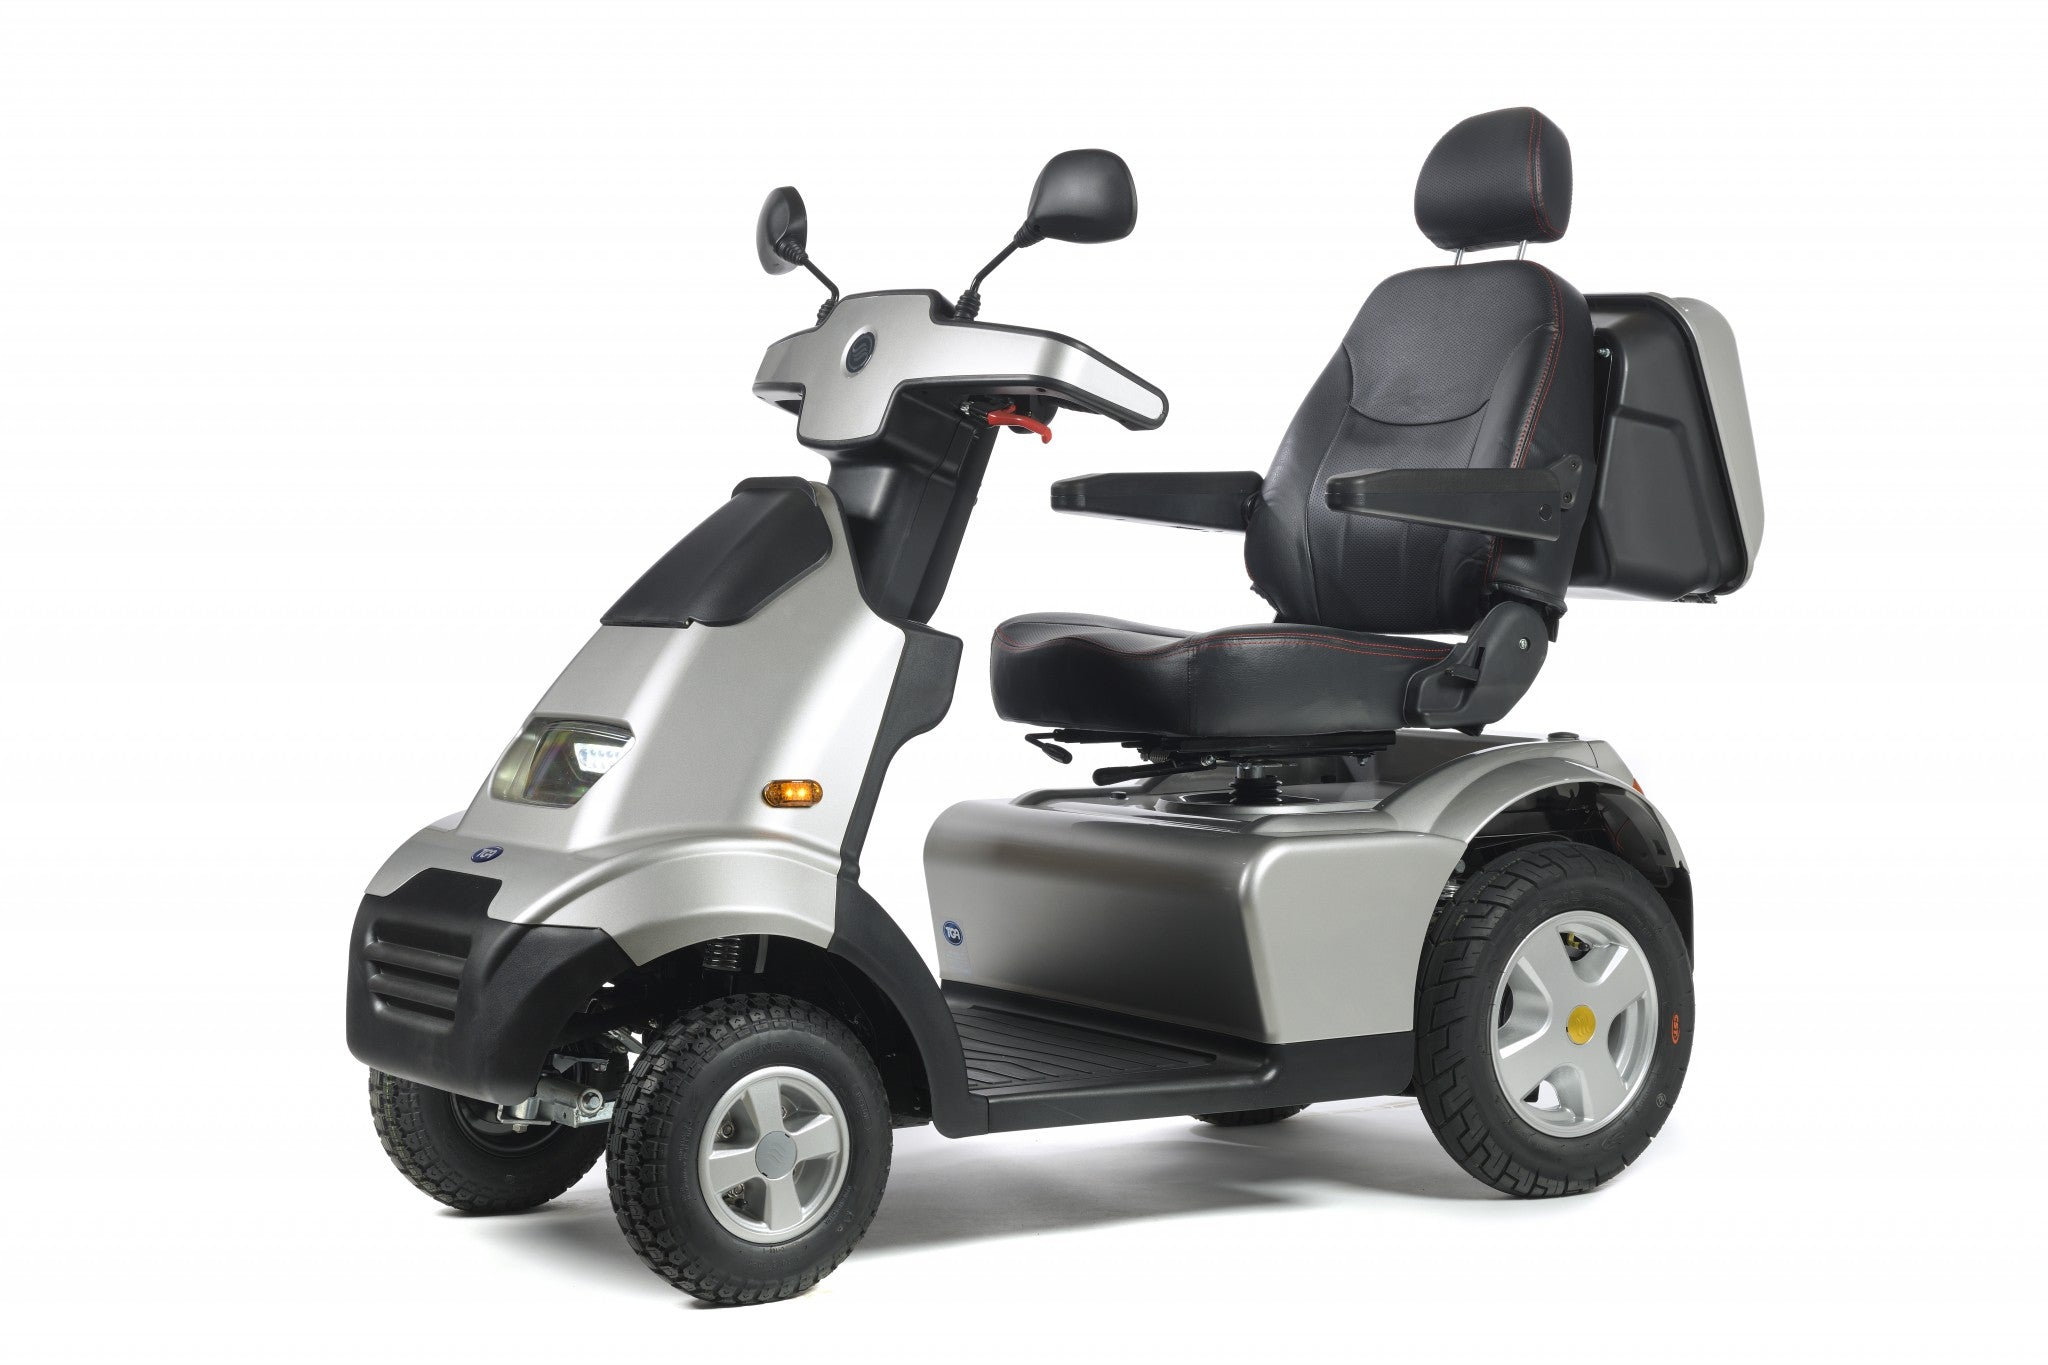 New TGA Breeze S4 GT 8mph Large All Terrain Wide Arch Mobility Scooter